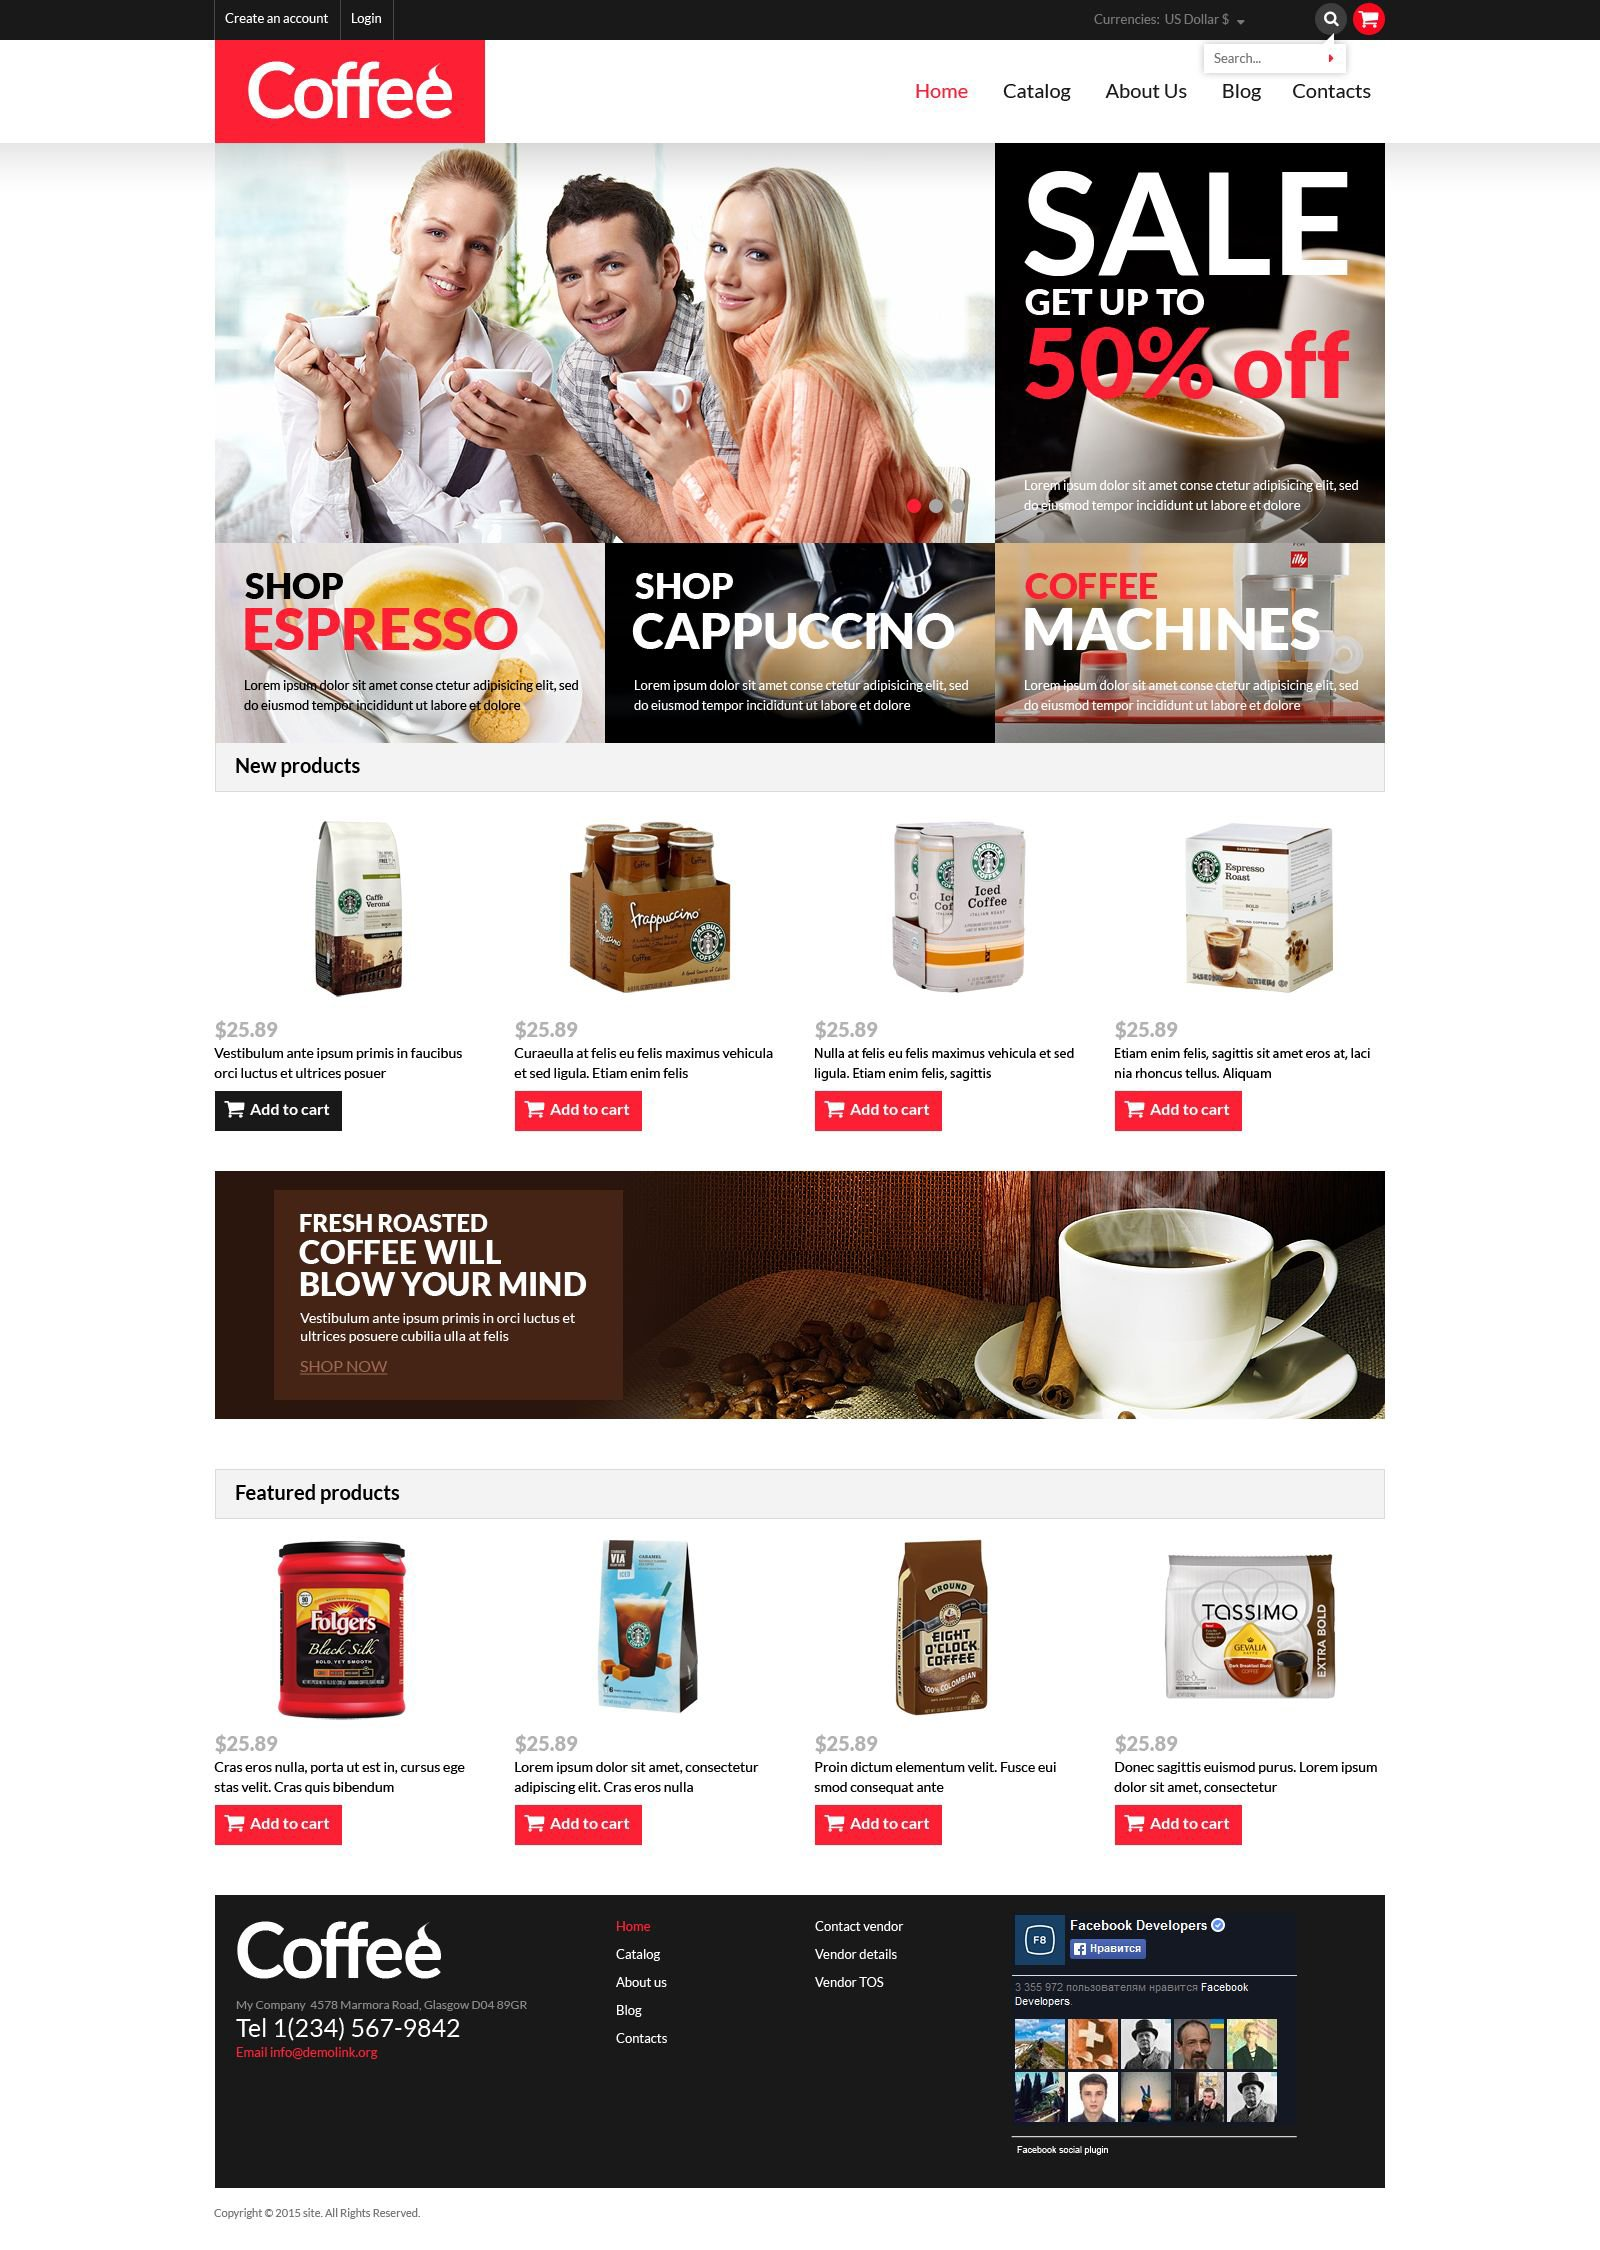 The Coffee Store House VirtueMart Design 53304, one of the best VirtueMart templates of its kind (cafe and restaurant, most popular), also known as Coffee Store house VirtueMart template, coffee-beans VirtueMart template, cup provider VirtueMart template, plantation VirtueMart template, coffee VirtueMart template, ground VirtueMart template, caffeine VirtueMart template, coffee-mill VirtueMart template, coffee-pot VirtueMart template, coffee VirtueMart template, tree VirtueMart template, Arabica delivery VirtueMart template, investor VirtueMart template, relationship VirtueMart template, partner VirtueMart template, selecting VirtueMart template, blends VirtueMart template, roasting VirtueMart template, perfection VirtueMart template, fresh VirtueMart template, coffee VirtueMart template, export VirtueMart template, sales VirtueMart template, prices VirtueMart template, espresso VirtueMart template, cappuccino VirtueMart template, black and related with Coffee Store house, coffee-beans, cup provider, plantation, coffee, ground, caffeine, coffee-mill, coffee-pot, coffee, tree, Arabica delivery, investor, relationship, partner, selecting, blends, roasting, perfection, fresh, coffee, export, sales, prices, espresso, cappuccino, black, etc.